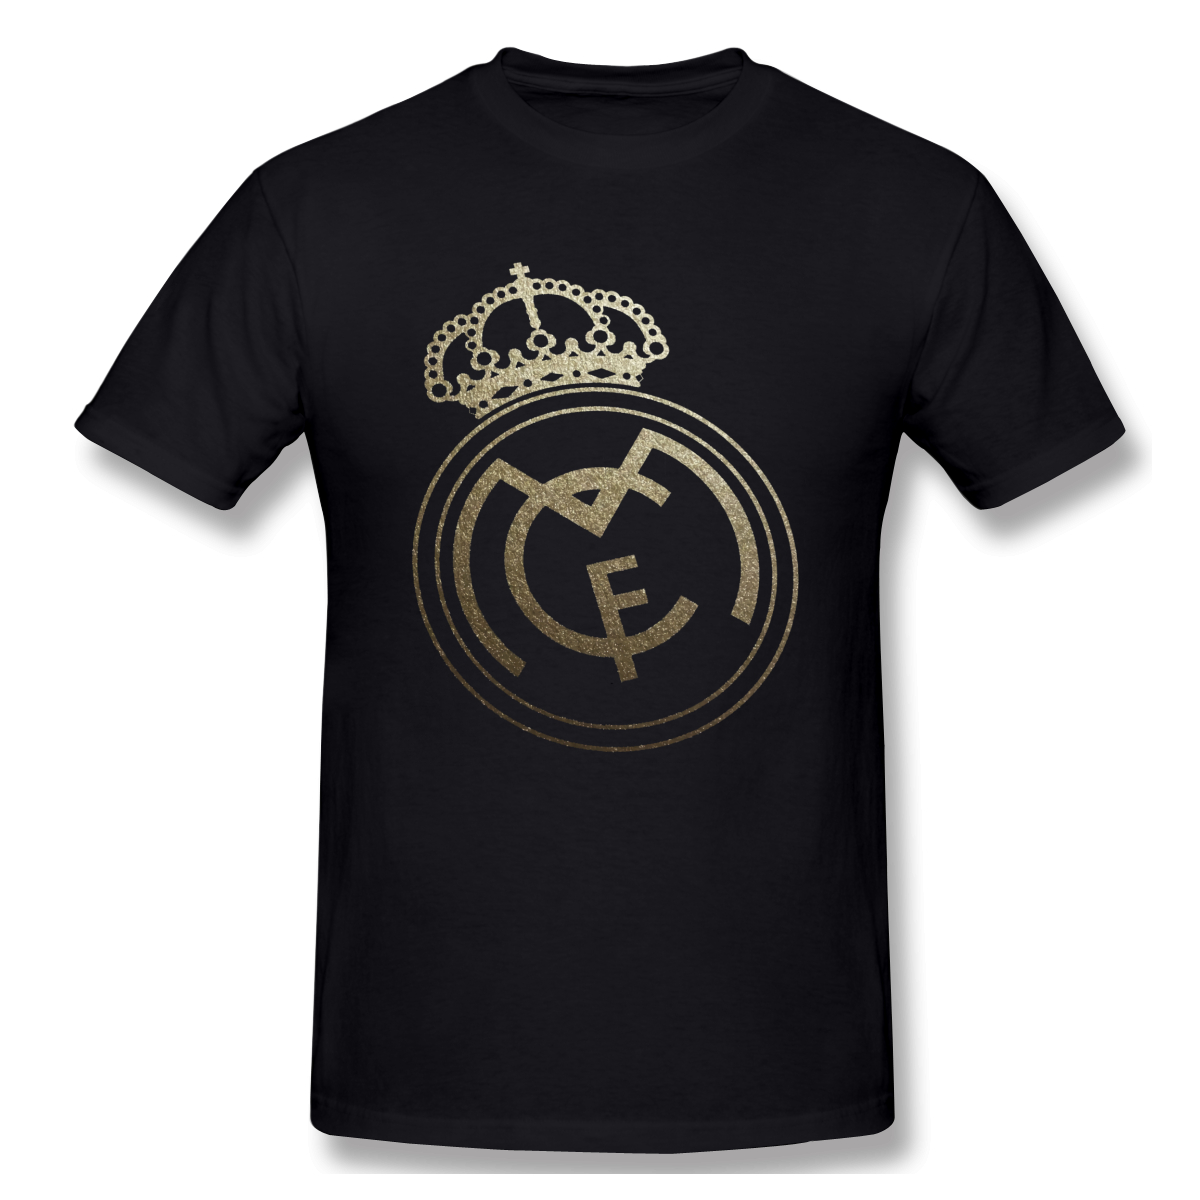 Yellow Real Madrided Sign Funny T-Shirt Men Women Summer O Neck Casual Cotton T Shirt Graphic Tee Crew Neck Top